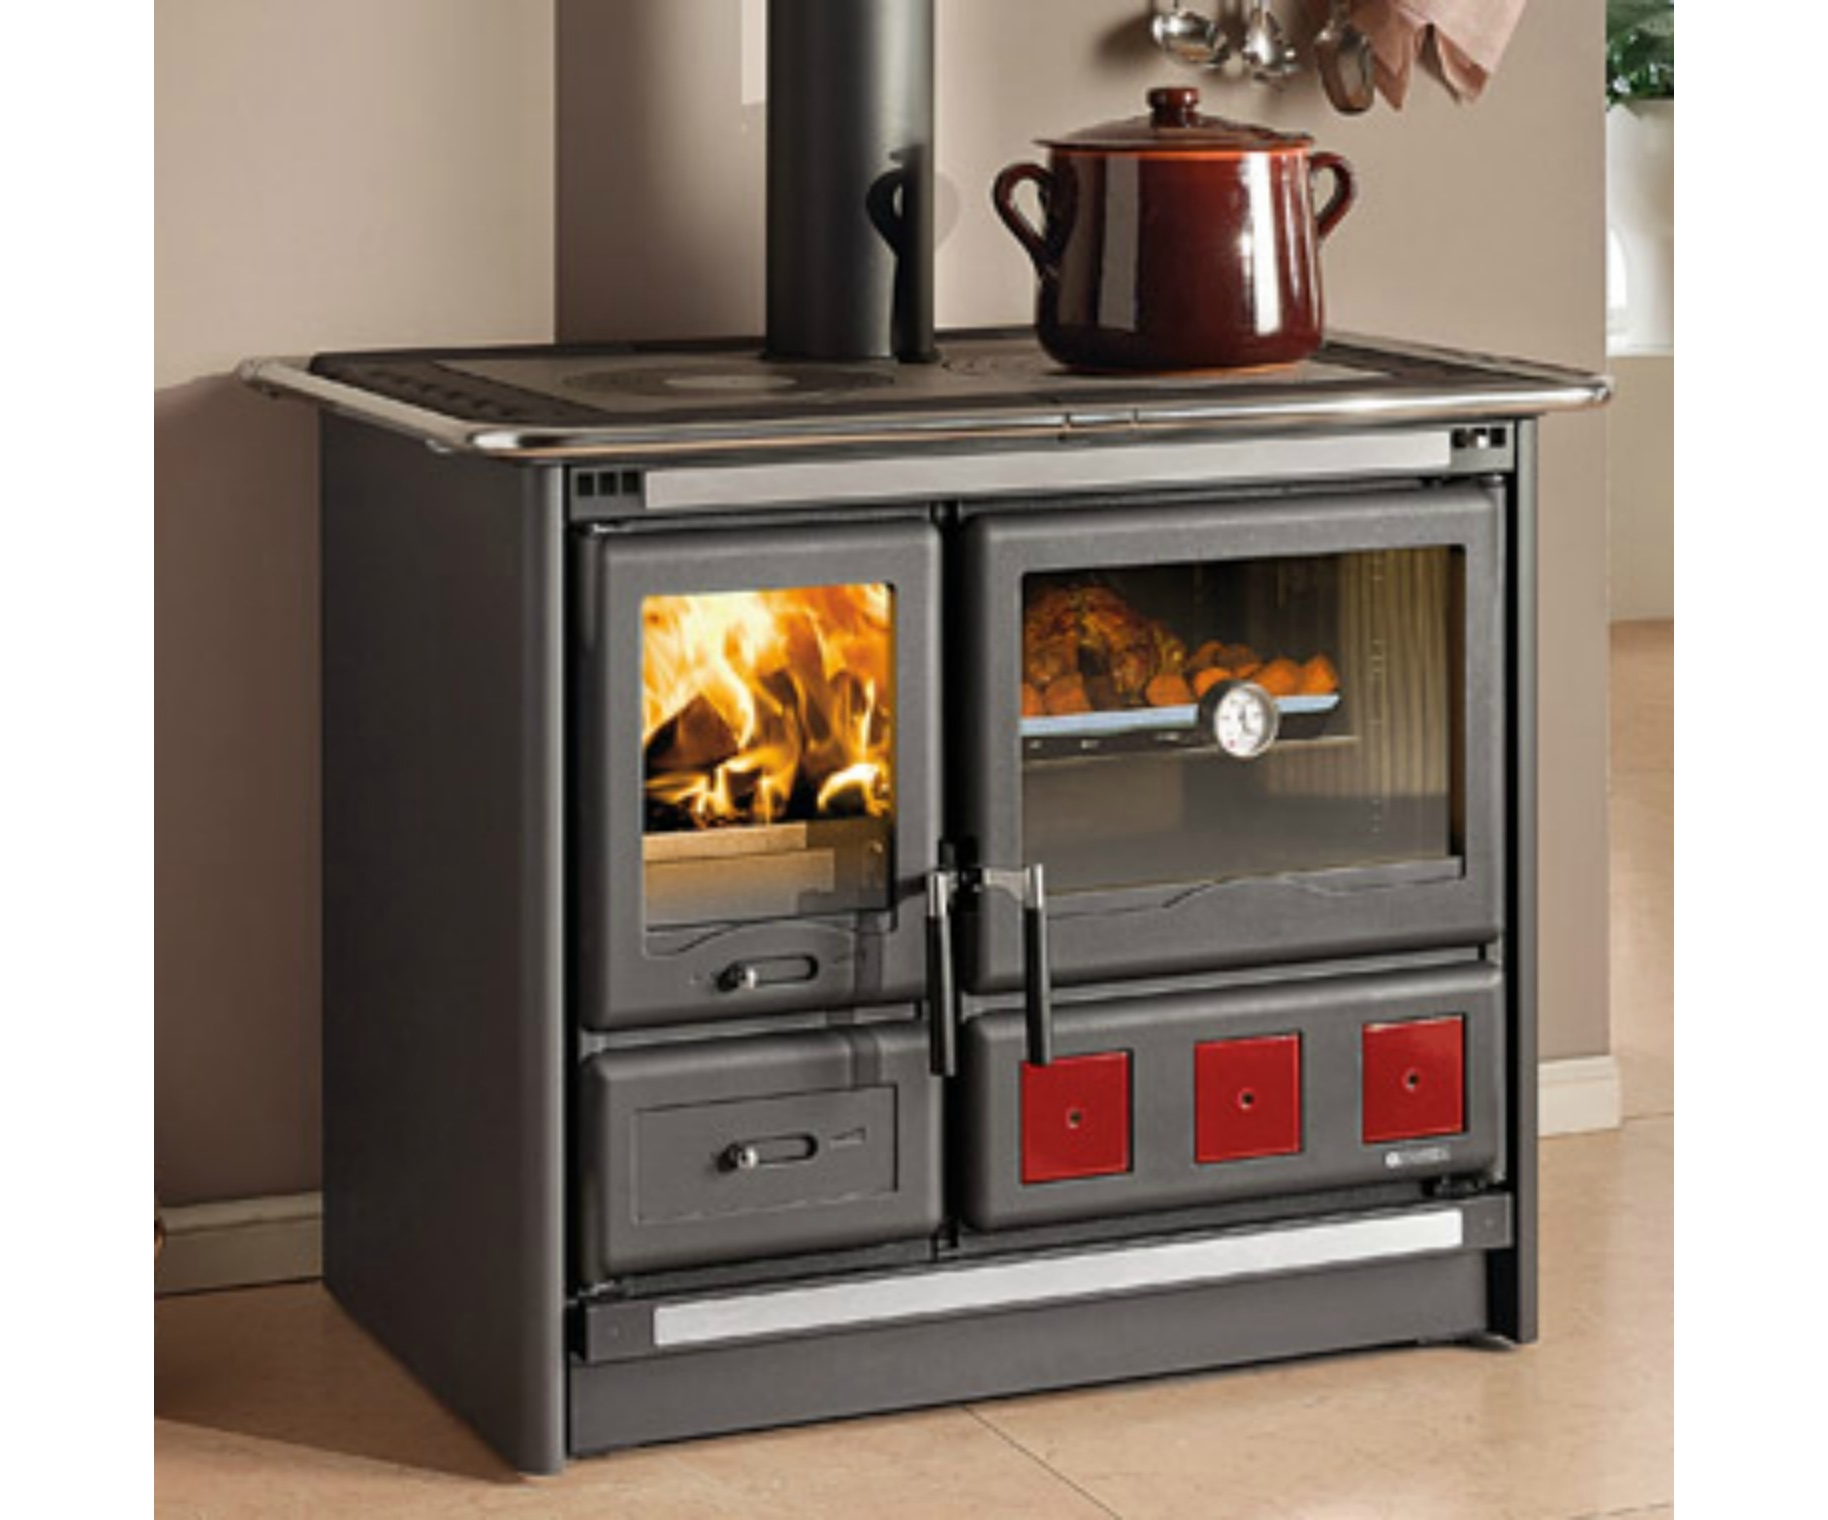 la nordica rosa xxl wood burning cooker at stove sellers. Black Bedroom Furniture Sets. Home Design Ideas